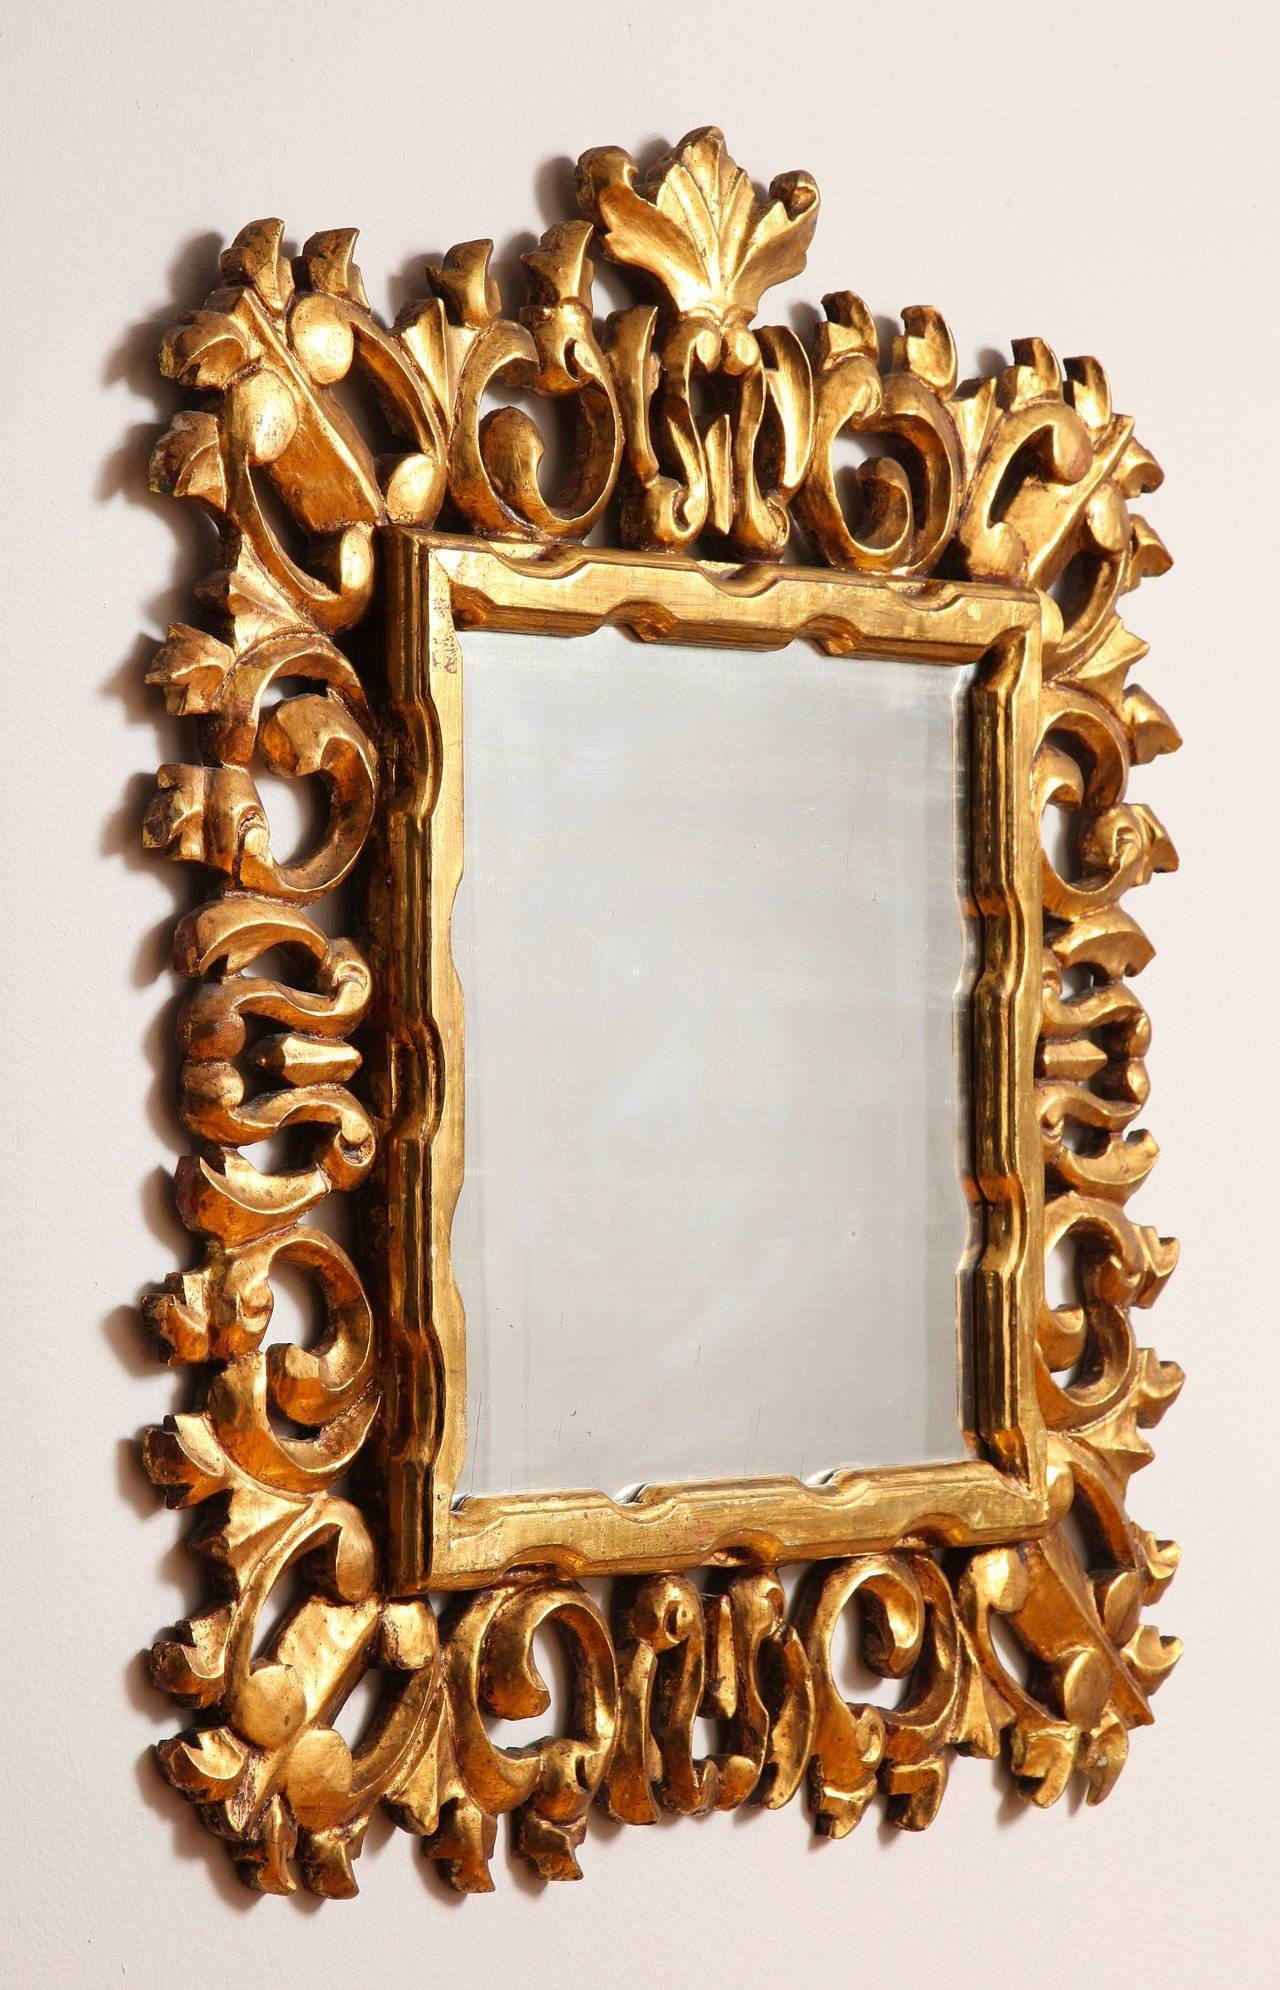 Carved And Gilded Italian Baroque Style Mirror Frame For Sale At With Regard To Baroque Style Mirrors (View 11 of 25)